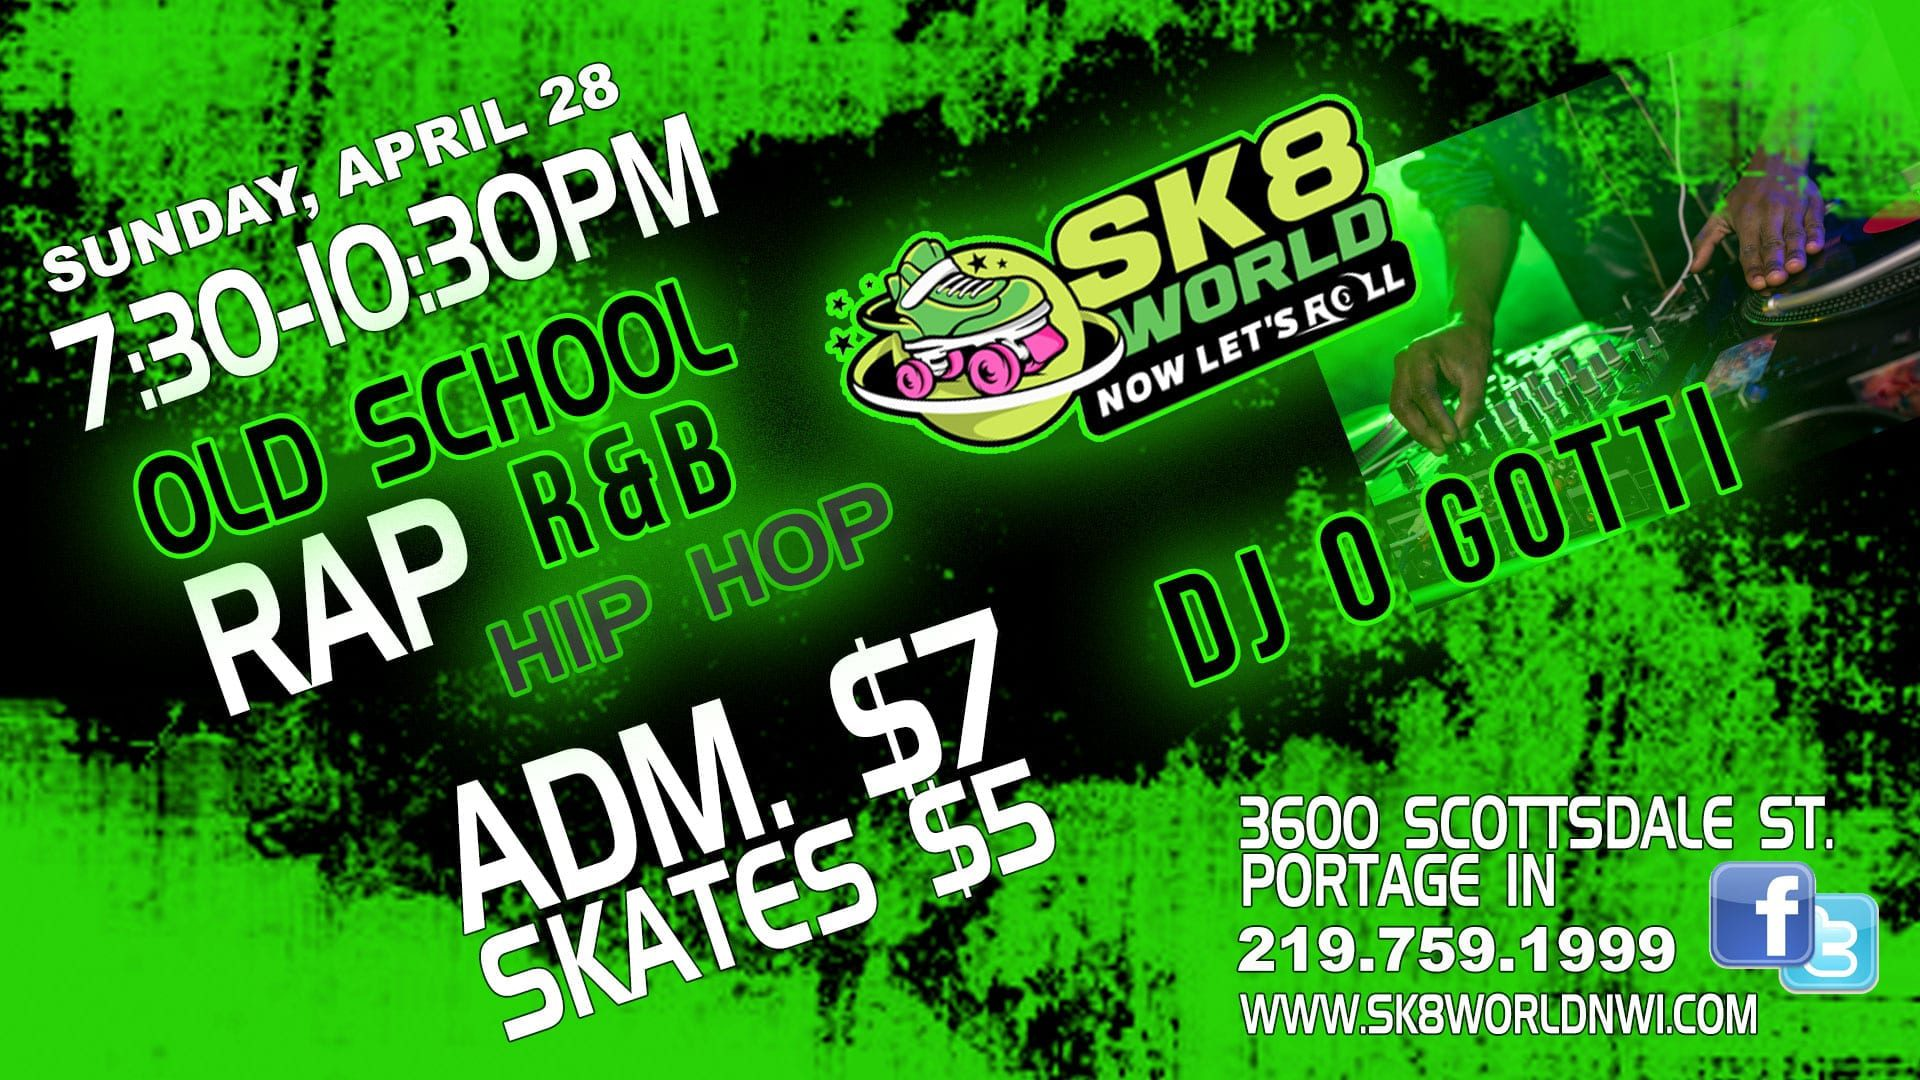 Hip Hop Old School Skate Night at Sk8world Portage